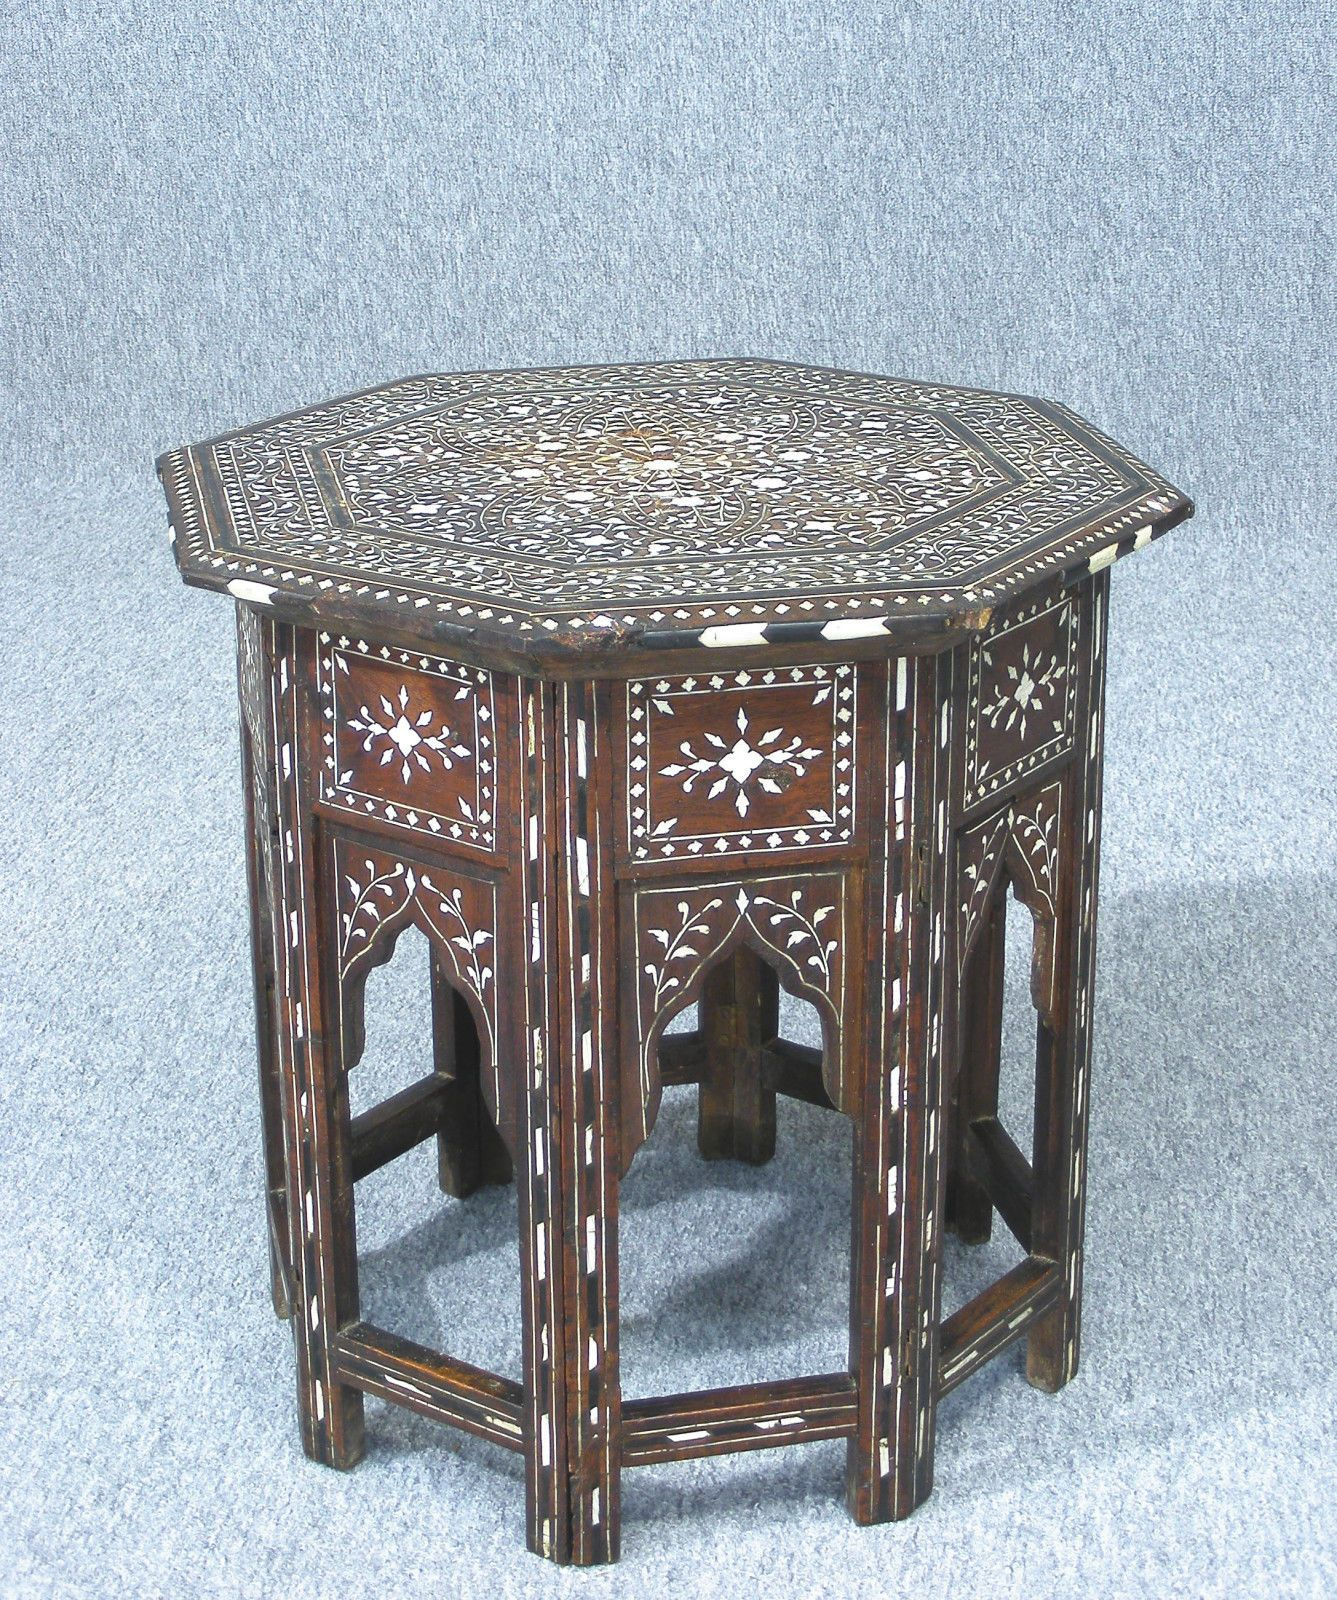 Genuine Antique Inlaid Anglo Indian Octagonal Side Table c